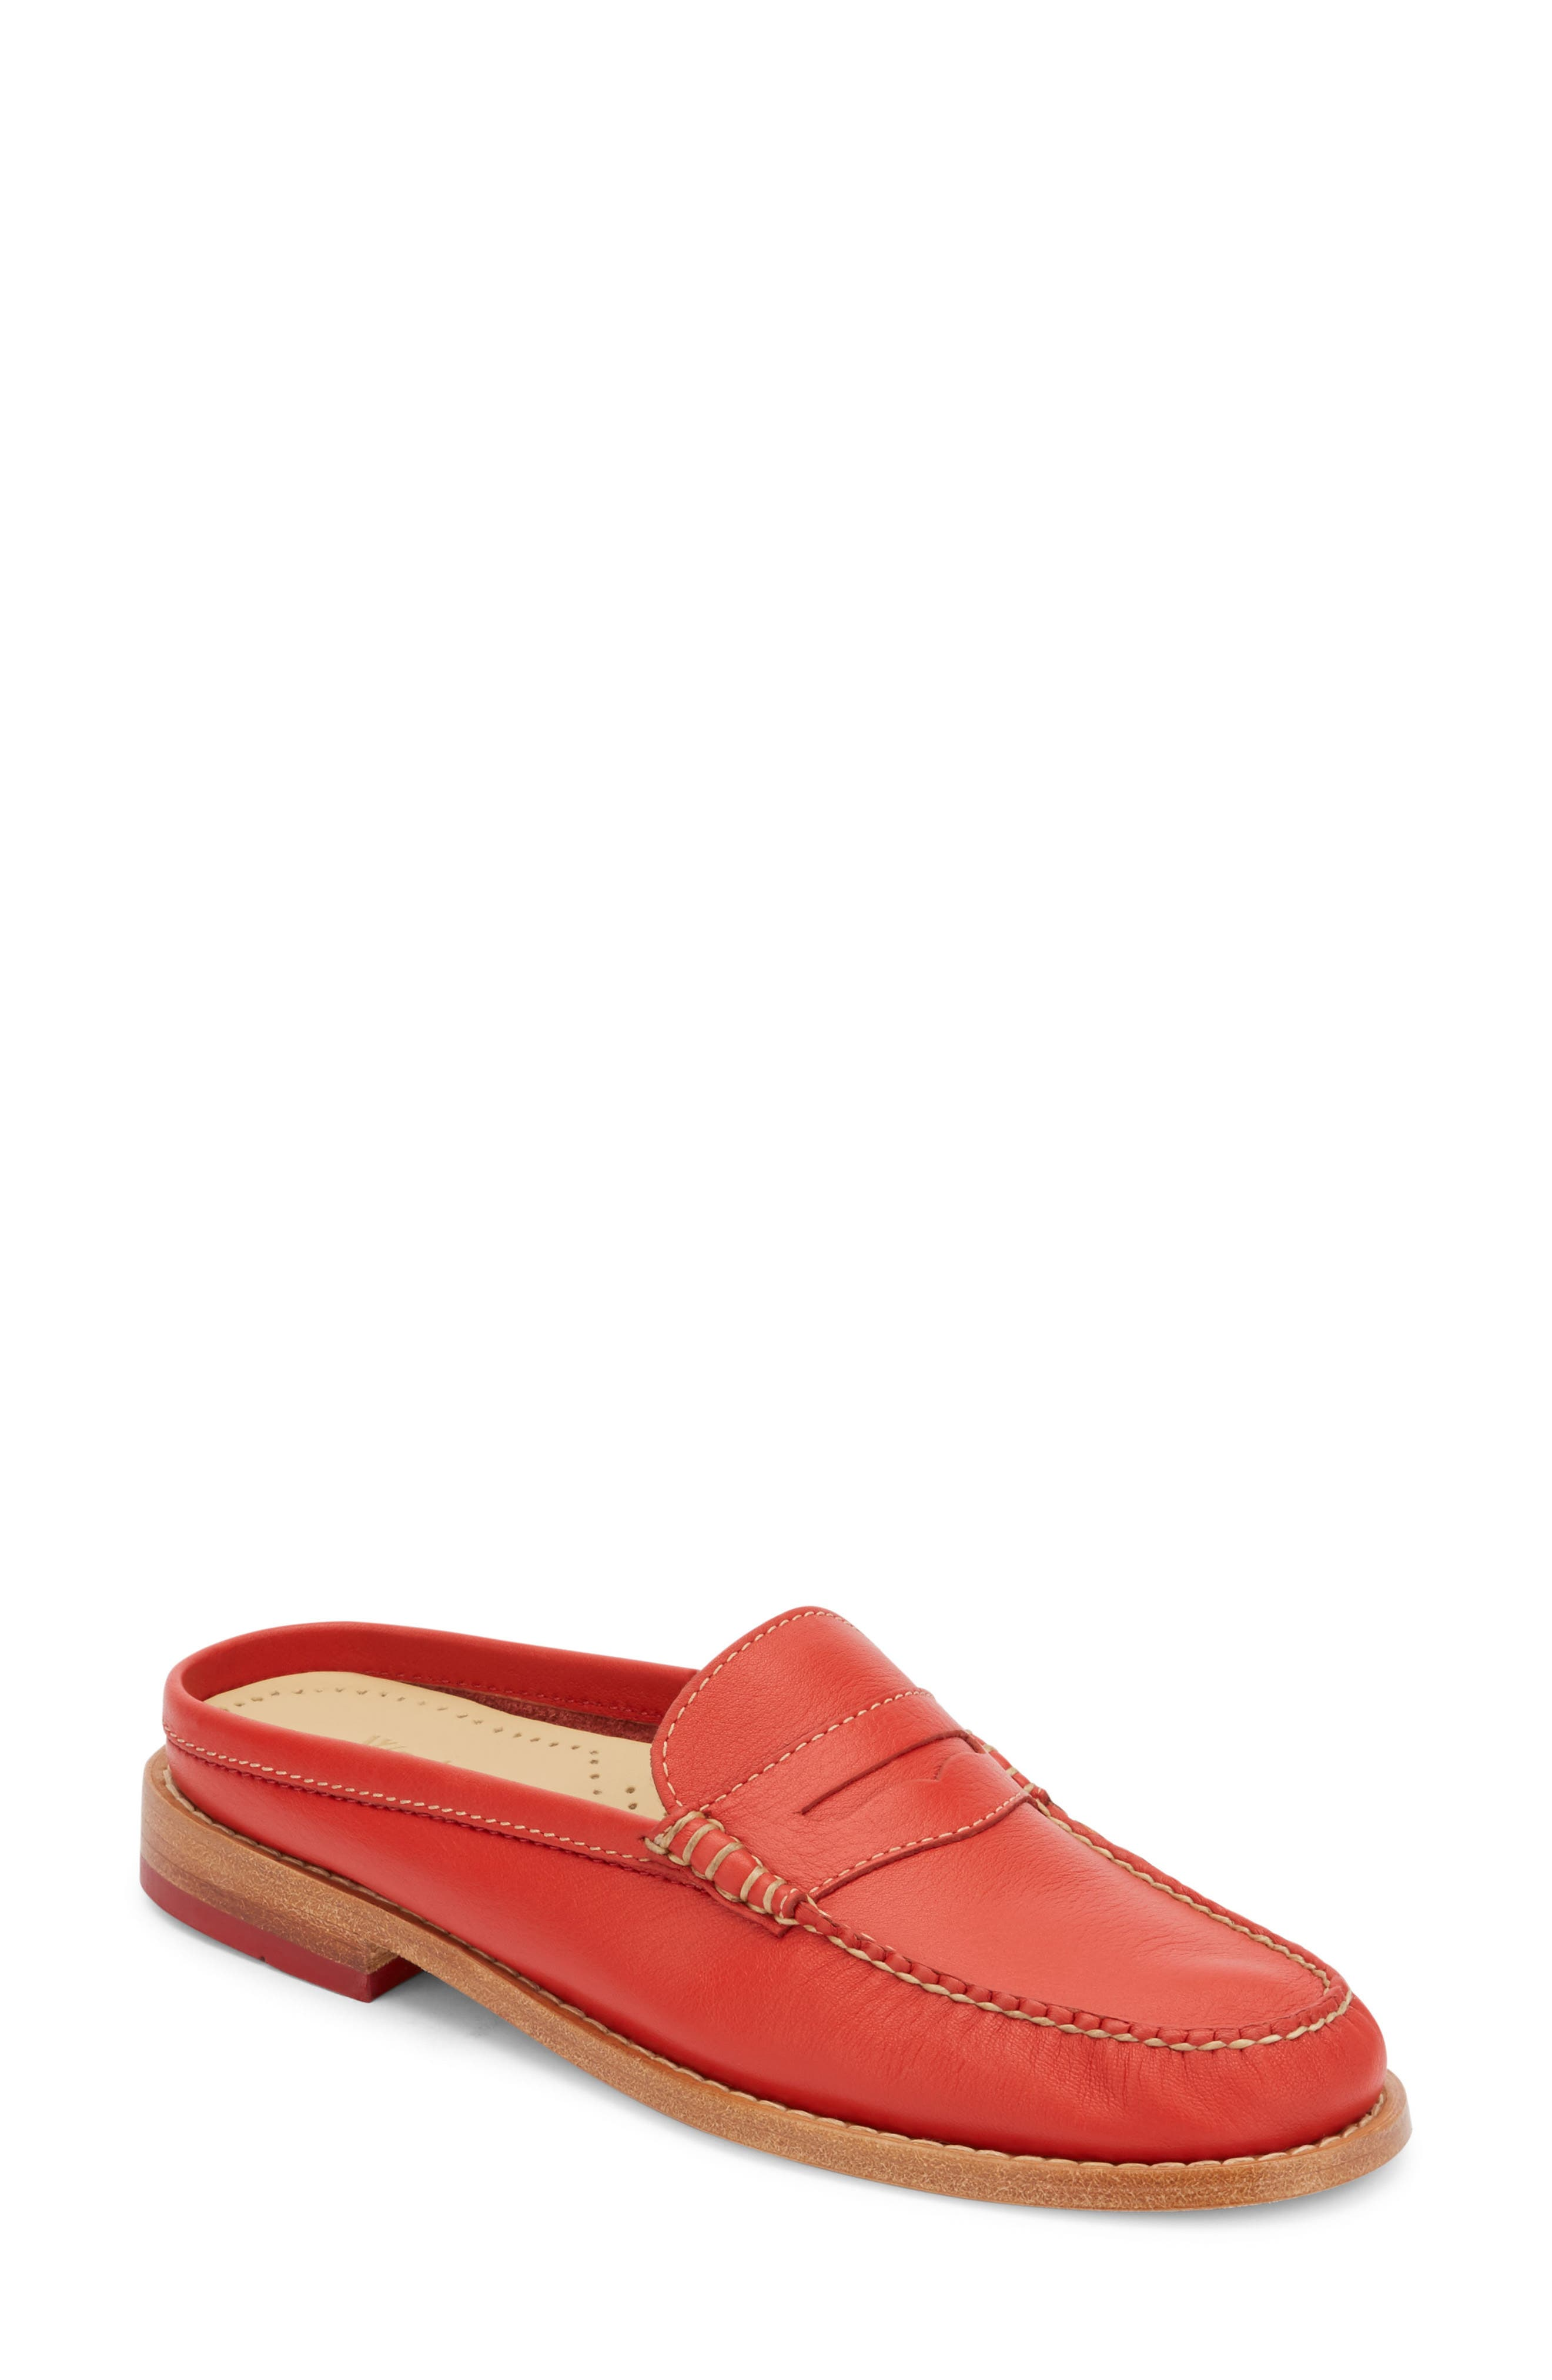 Wynn Loafer Mule,                             Main thumbnail 1, color,                             Roma Red Leather